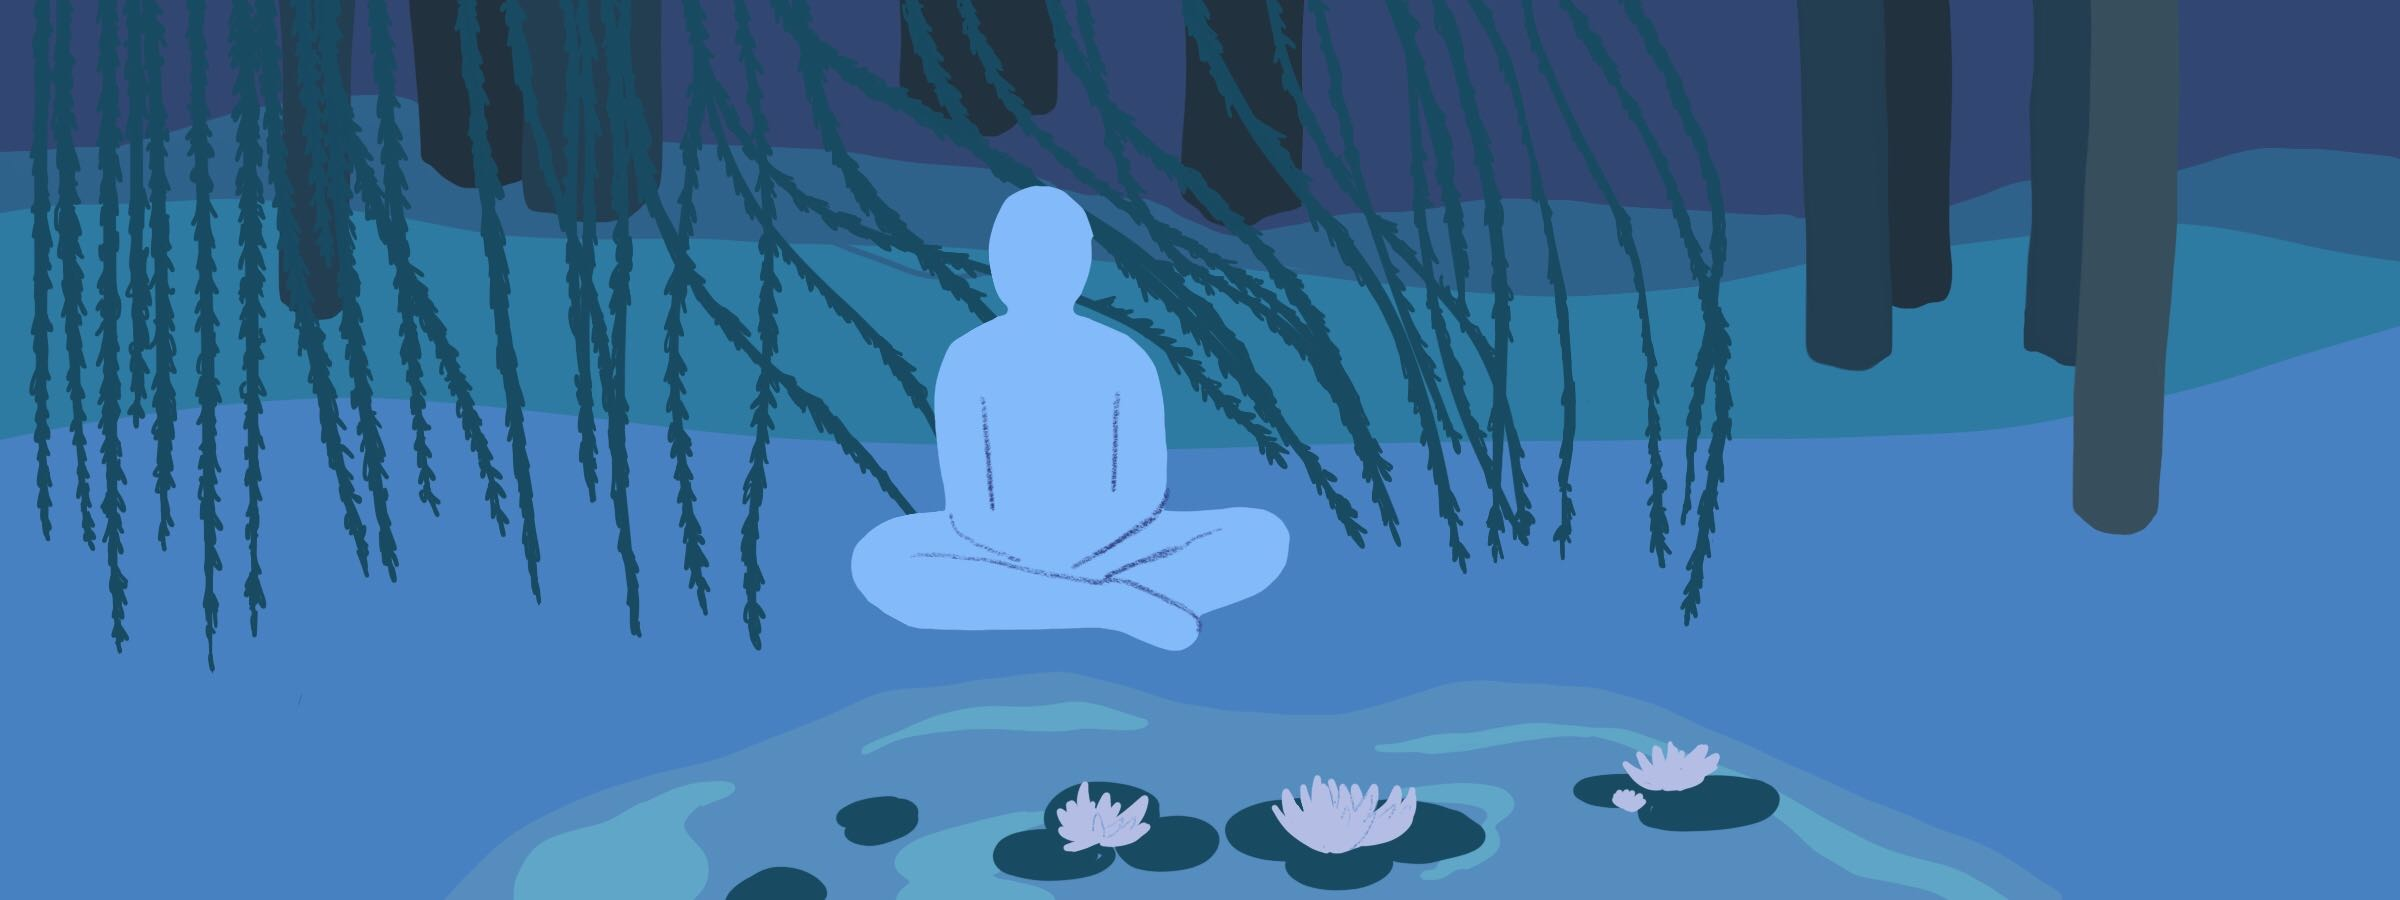 Designing With Empathy: A figure sits meditating in the woods by a pond